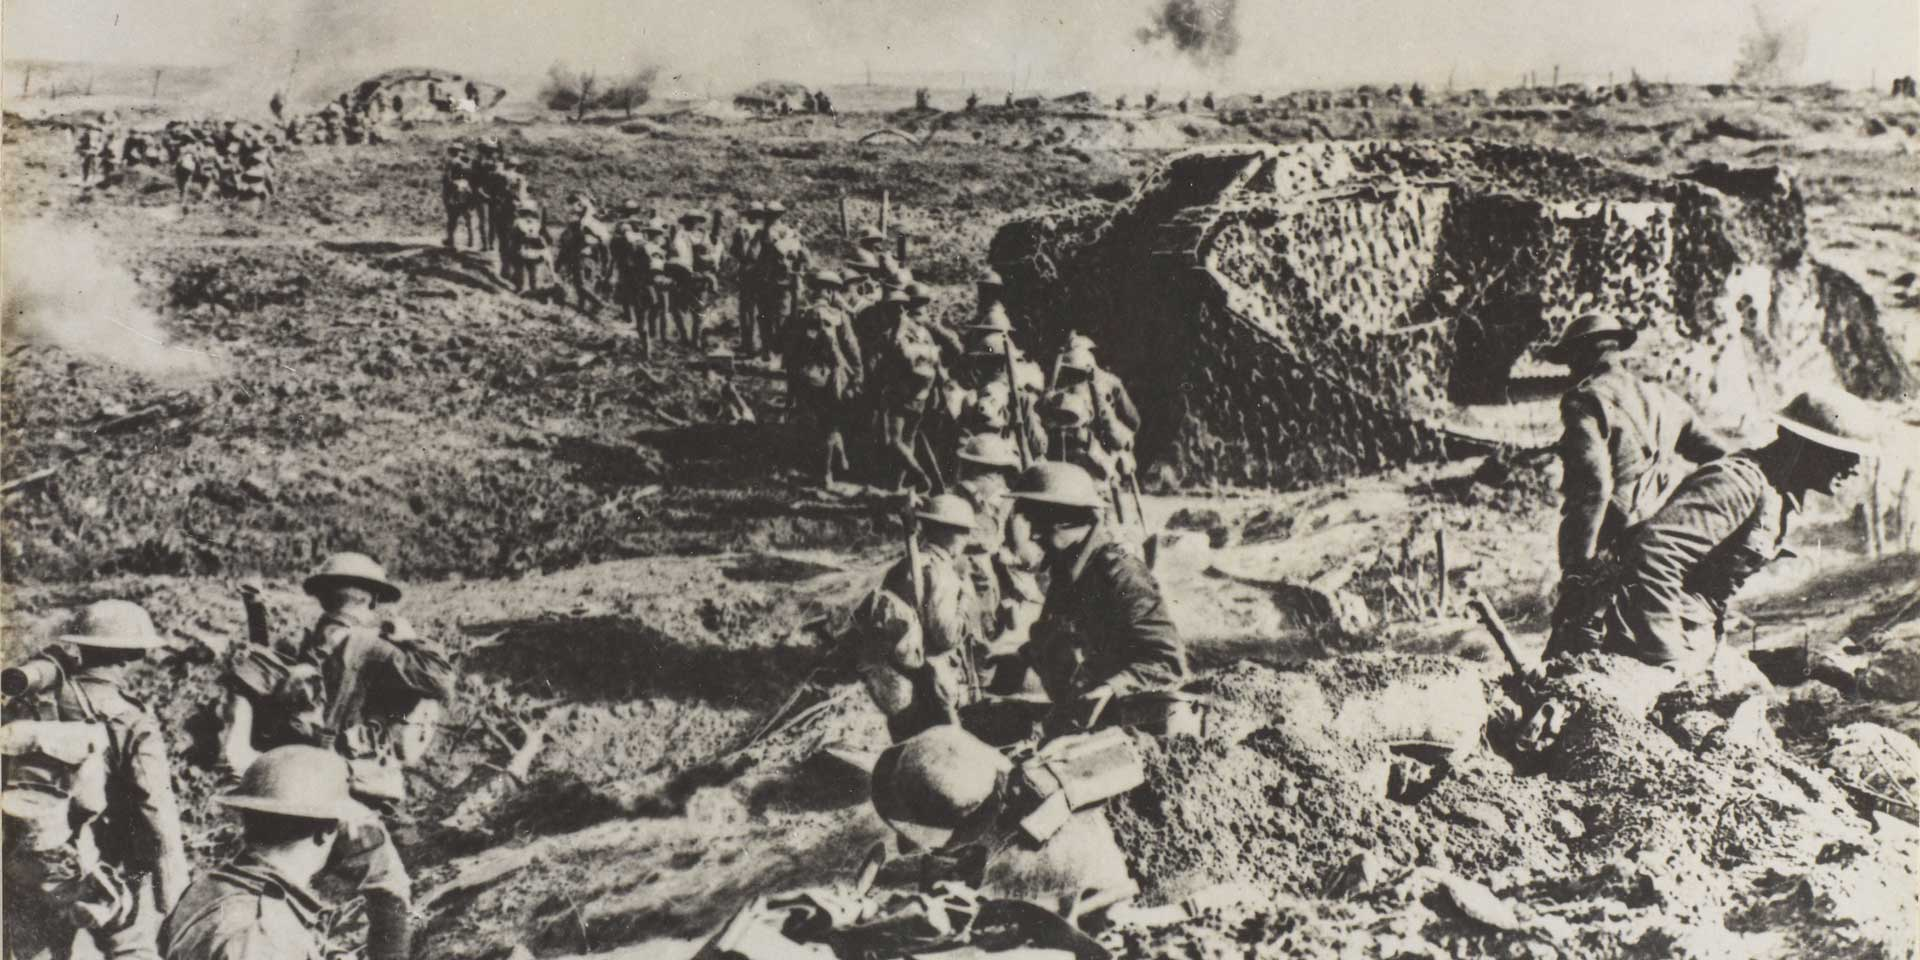 Camouflaged tanks and infantry at the Battle of Polygon Wood, 26 September 1917